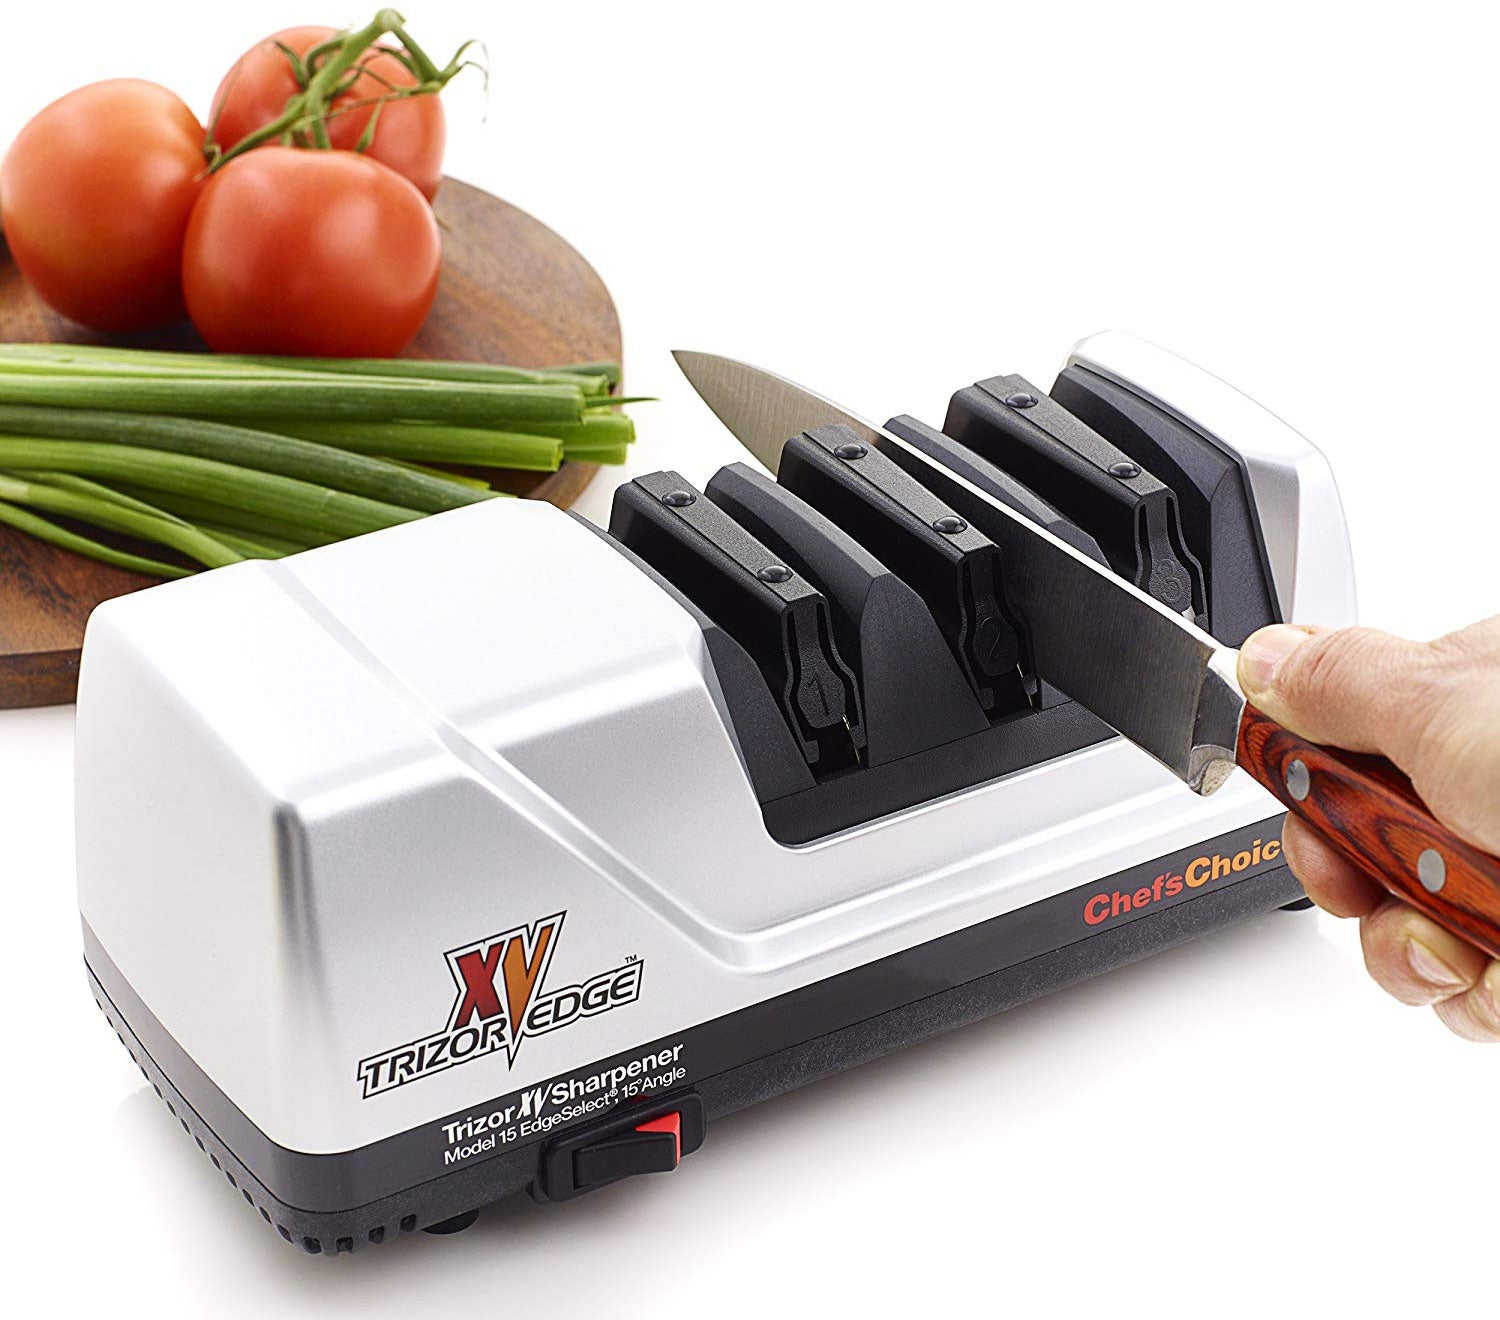 An electric sharpener is a great solution if someone doesn't know how to properly use sharpening stones to hone a blade.